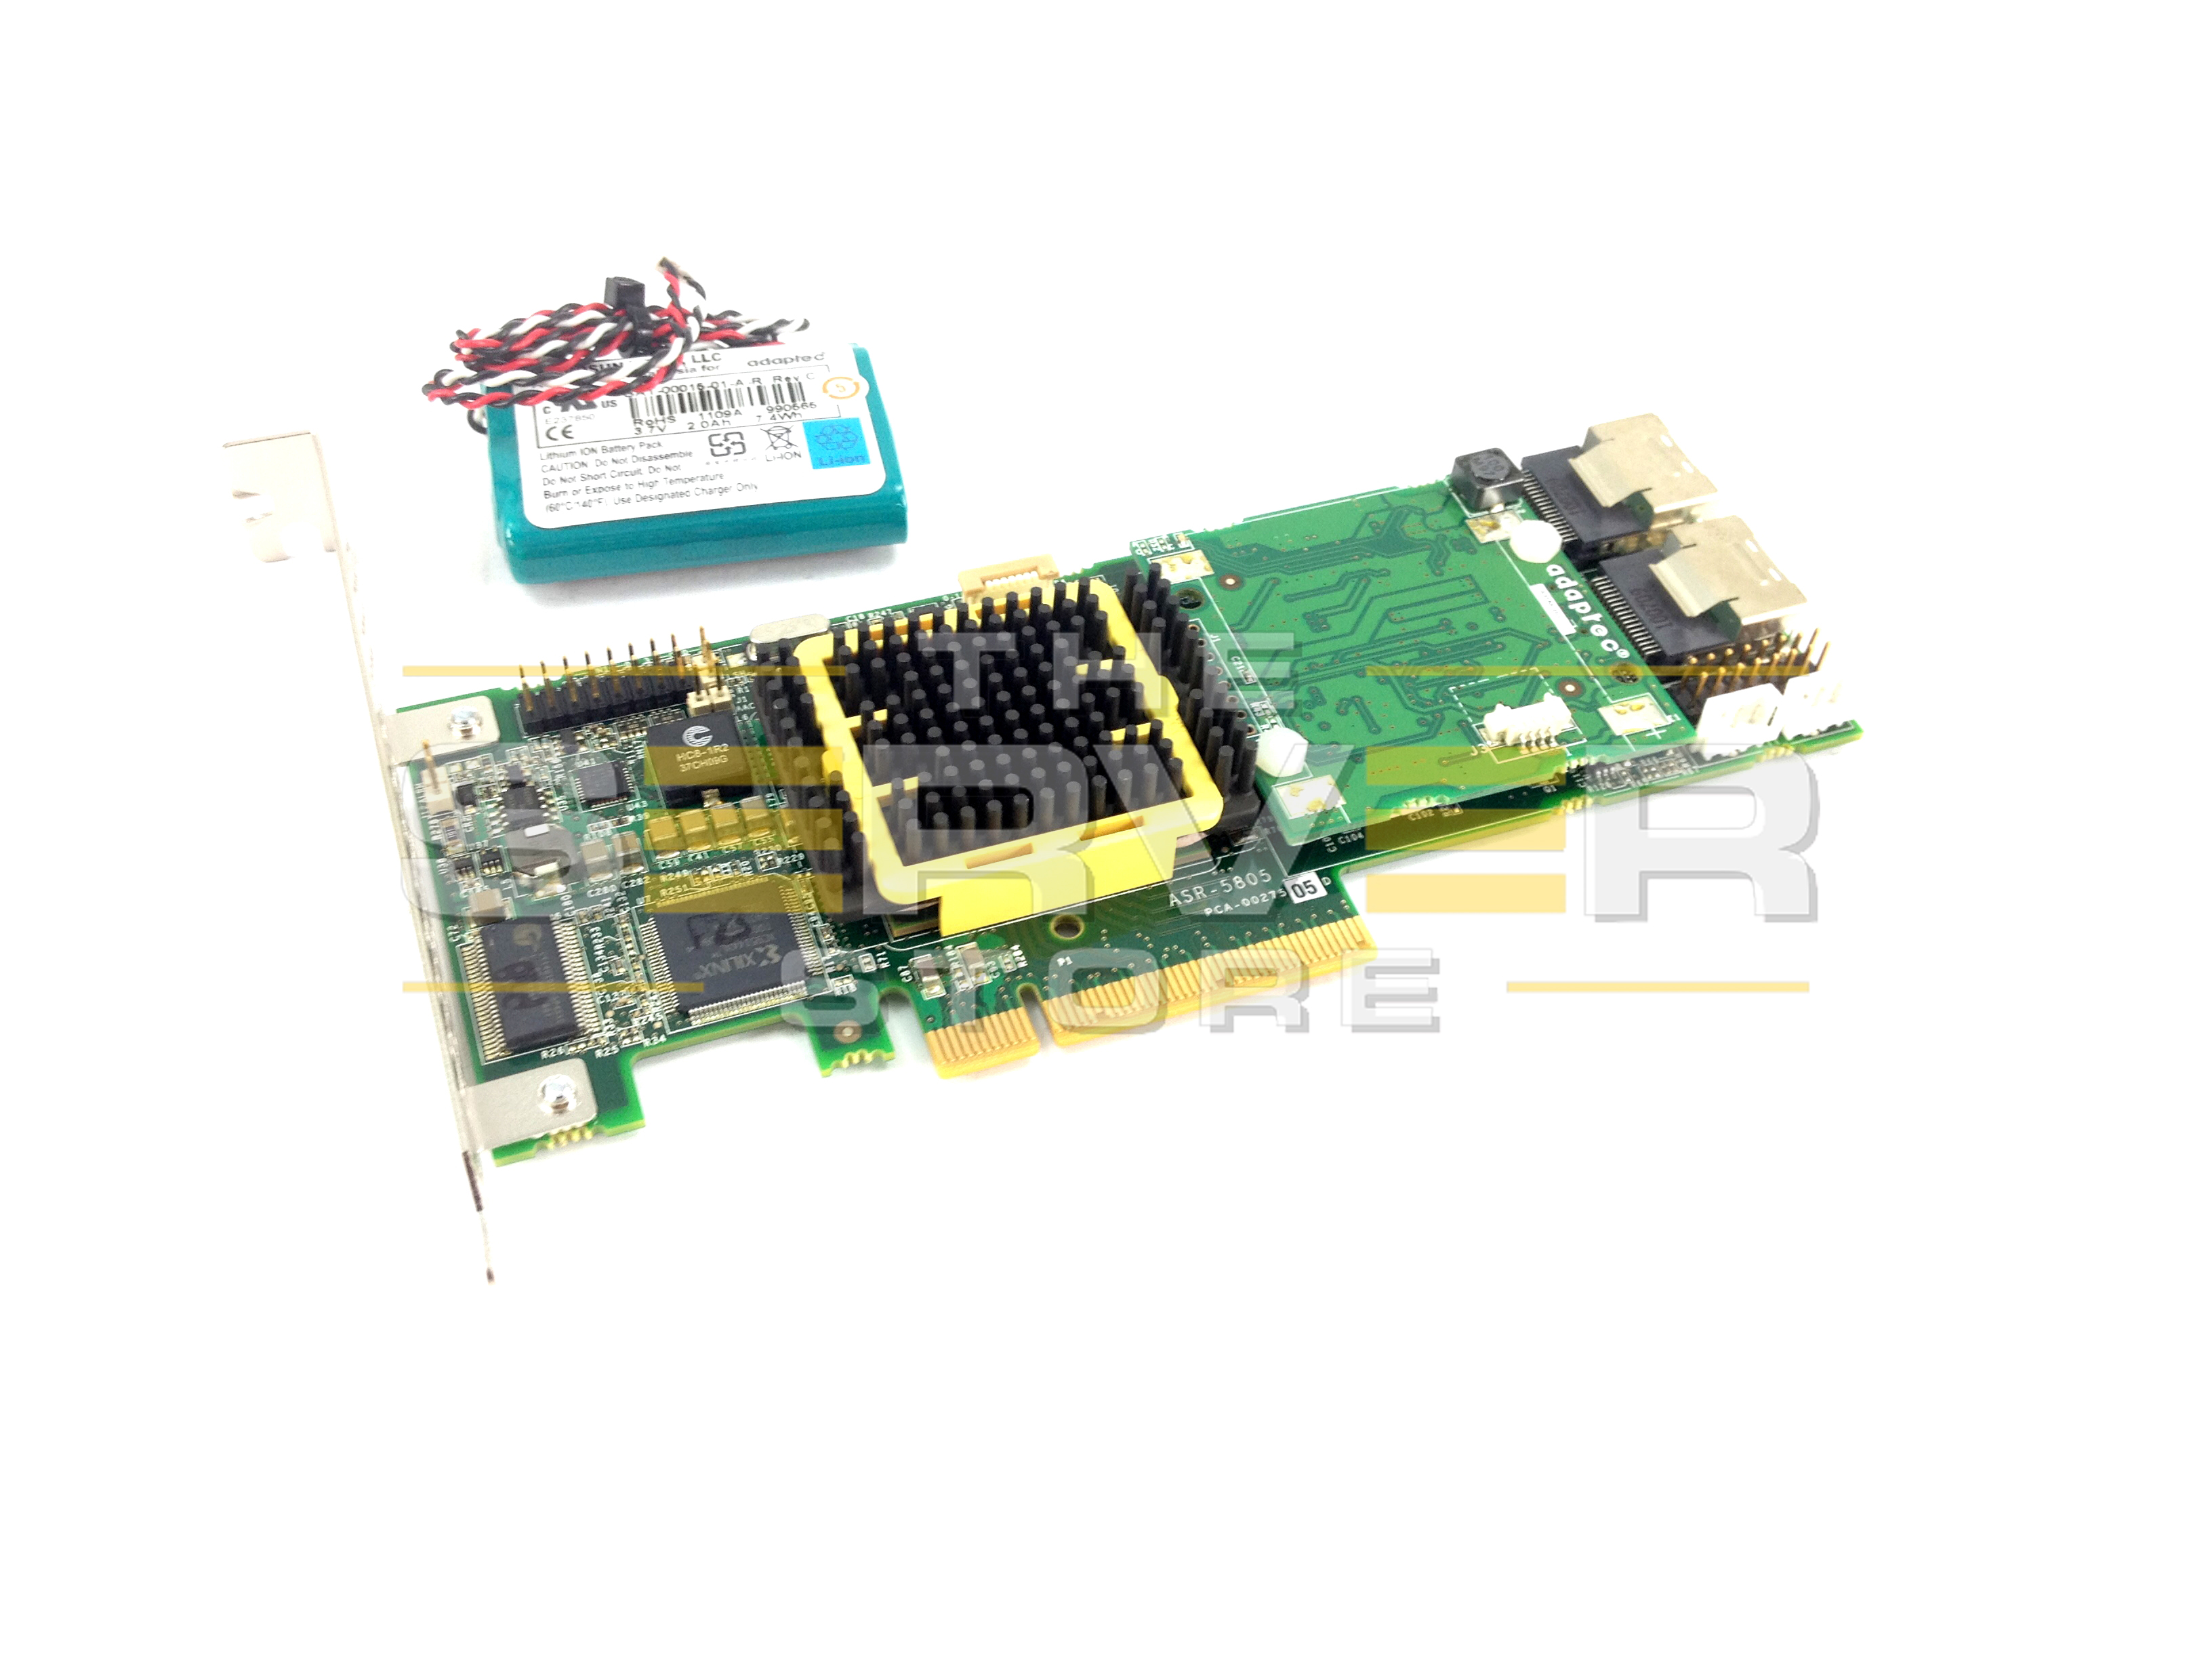 Adaptec 8-Port PCI-E 512MB Cache RAID Controller with Battery, ASR-5805